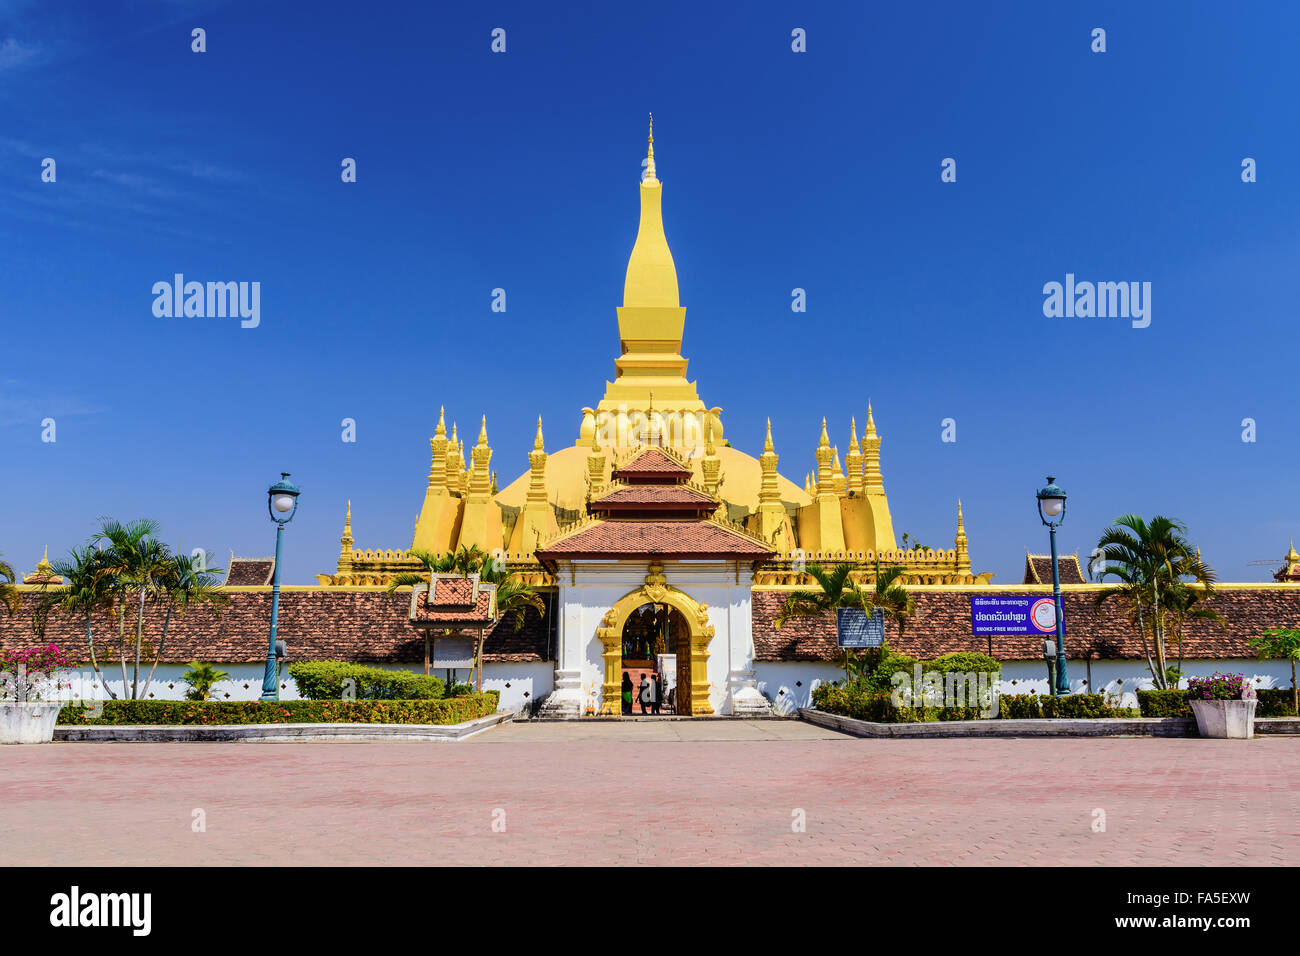 Landmark of Vientiane, Laos Phra That Luang front view in day light. - Stock Image